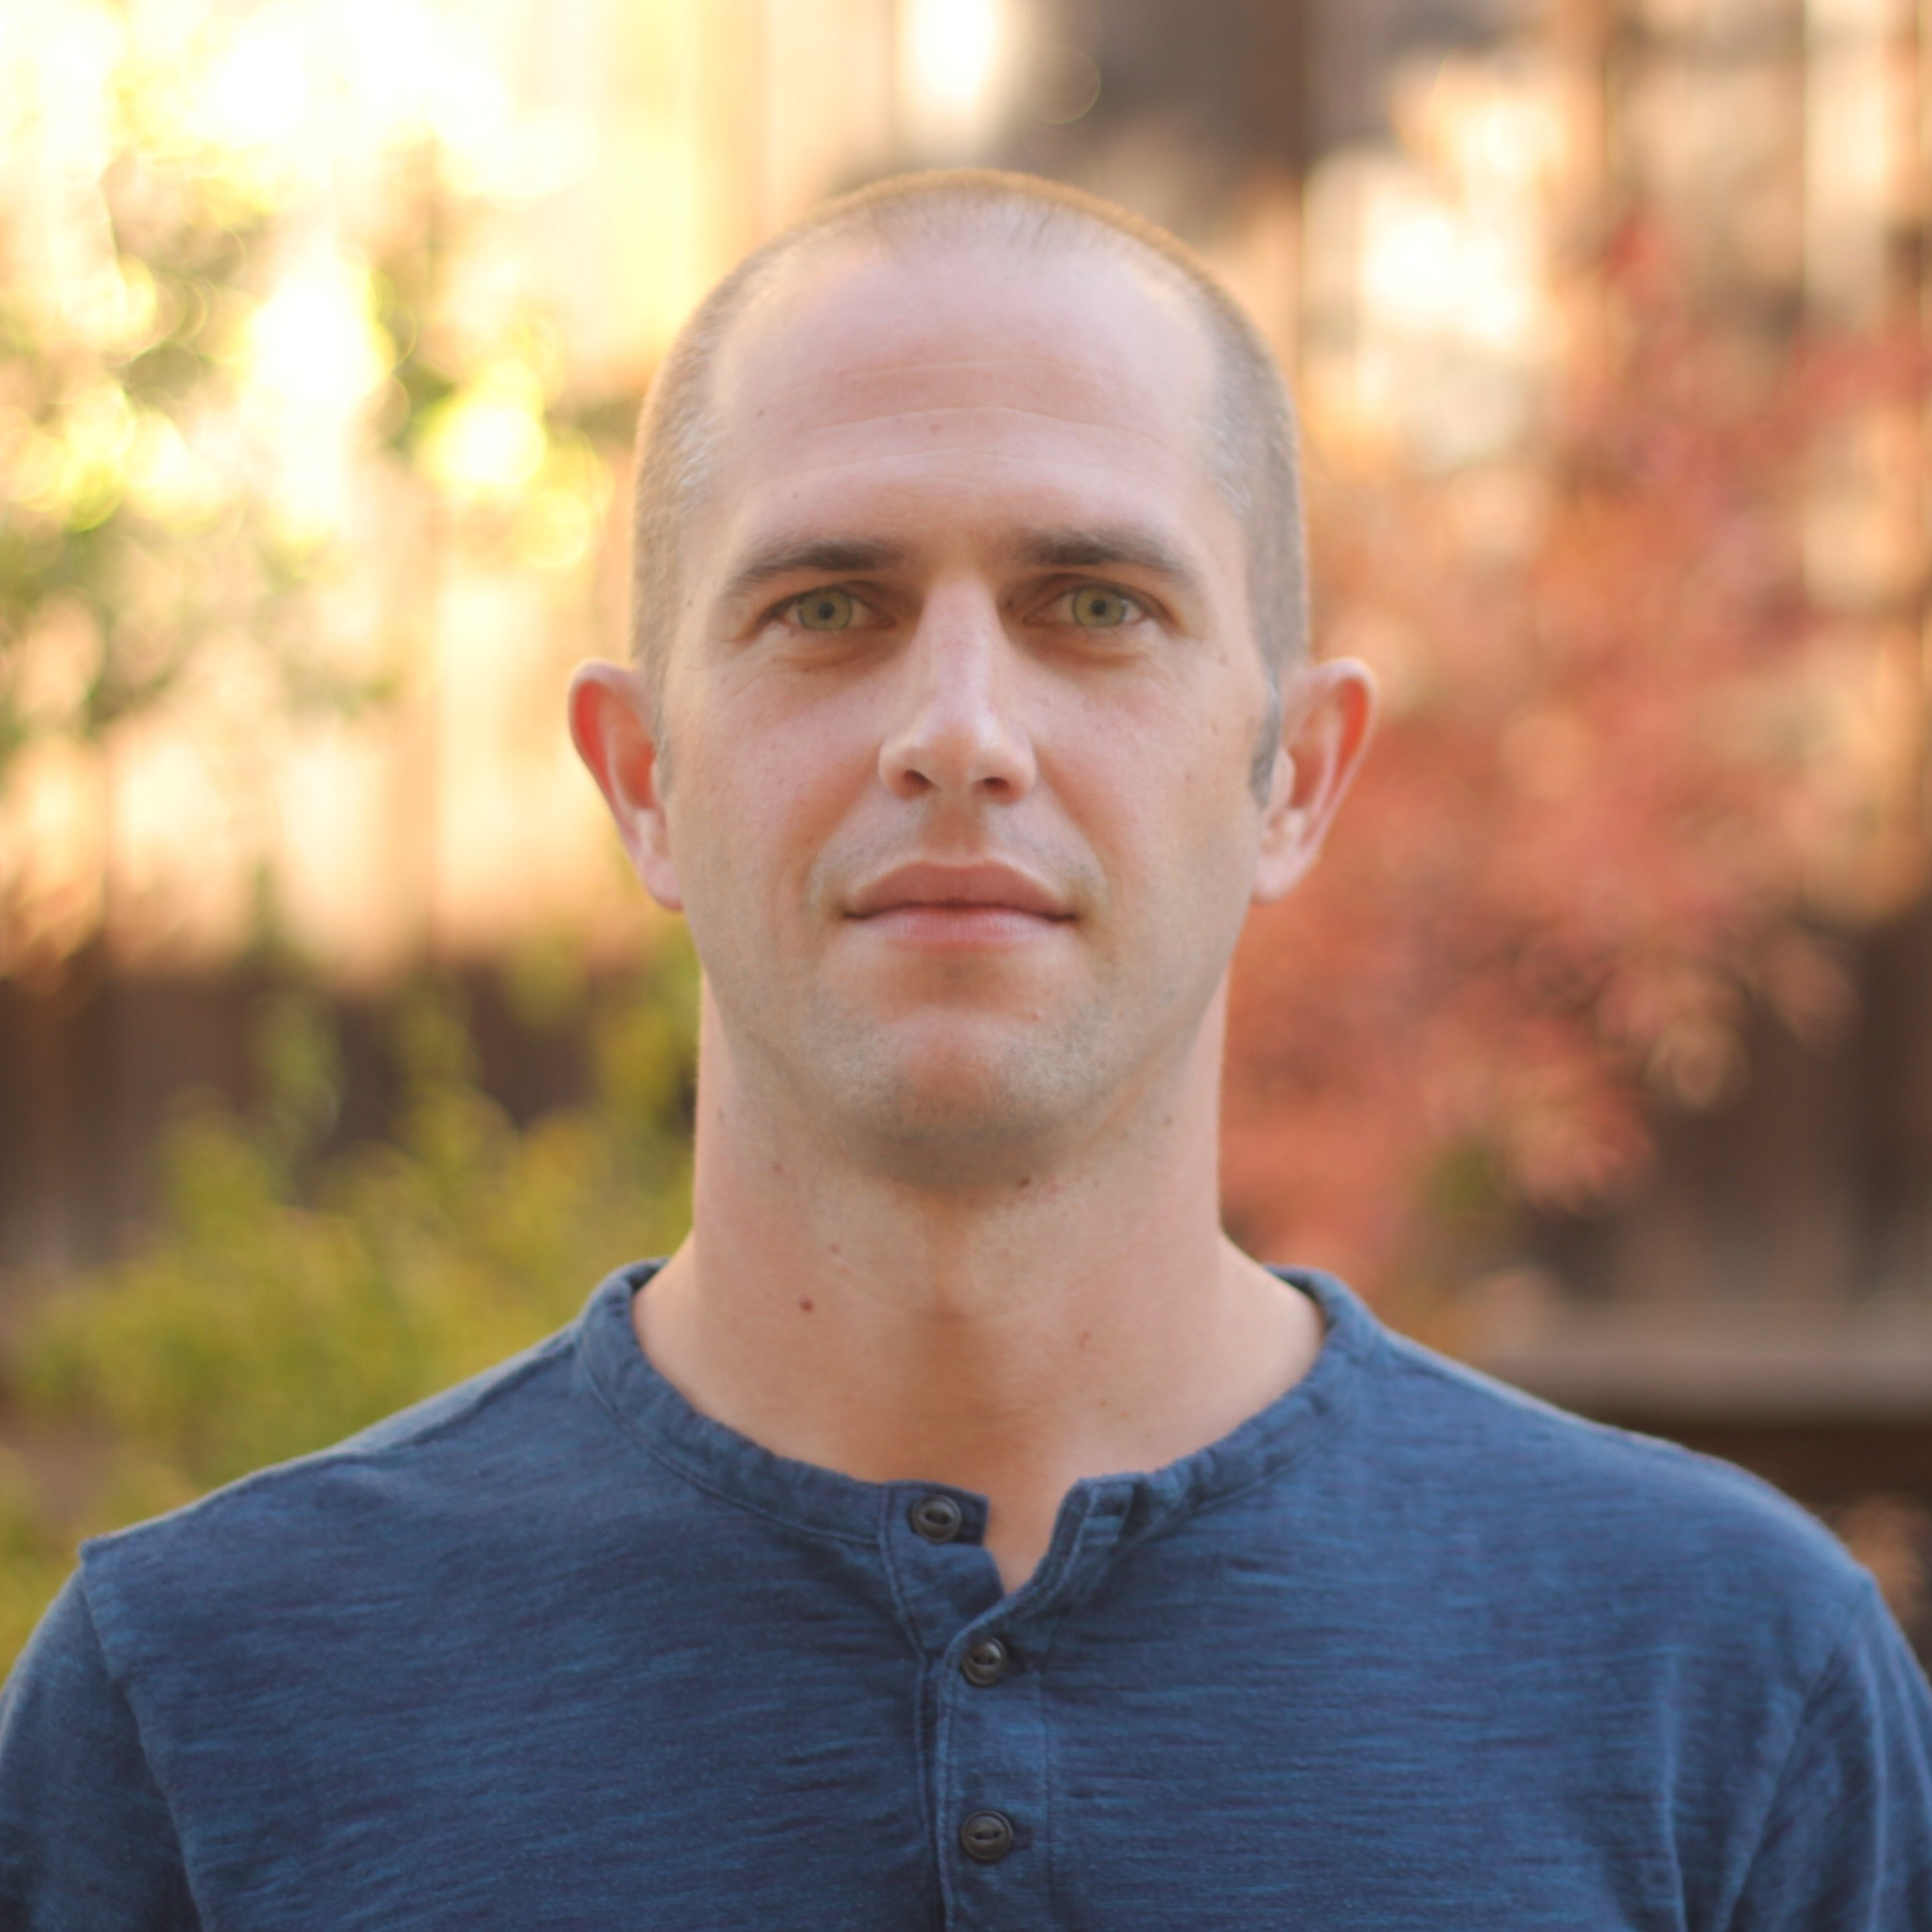 Justin Honas is Procurement & Design Manager at Active Wellness